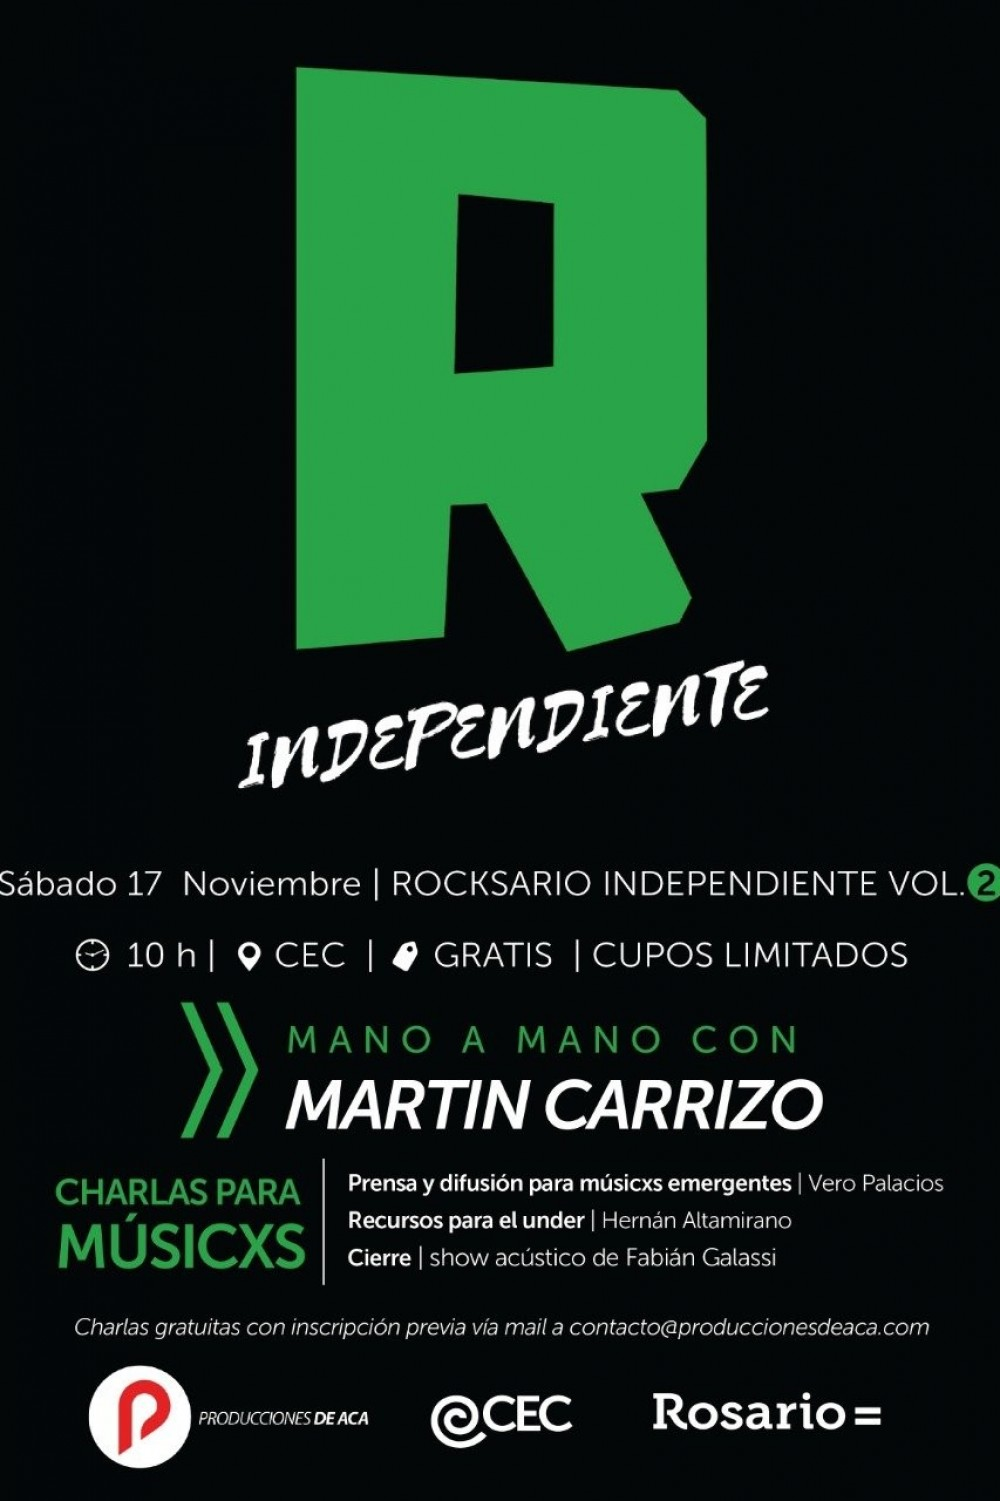 17-18/11 - ROCKSARIO INDEPENDIENTE VOL 2